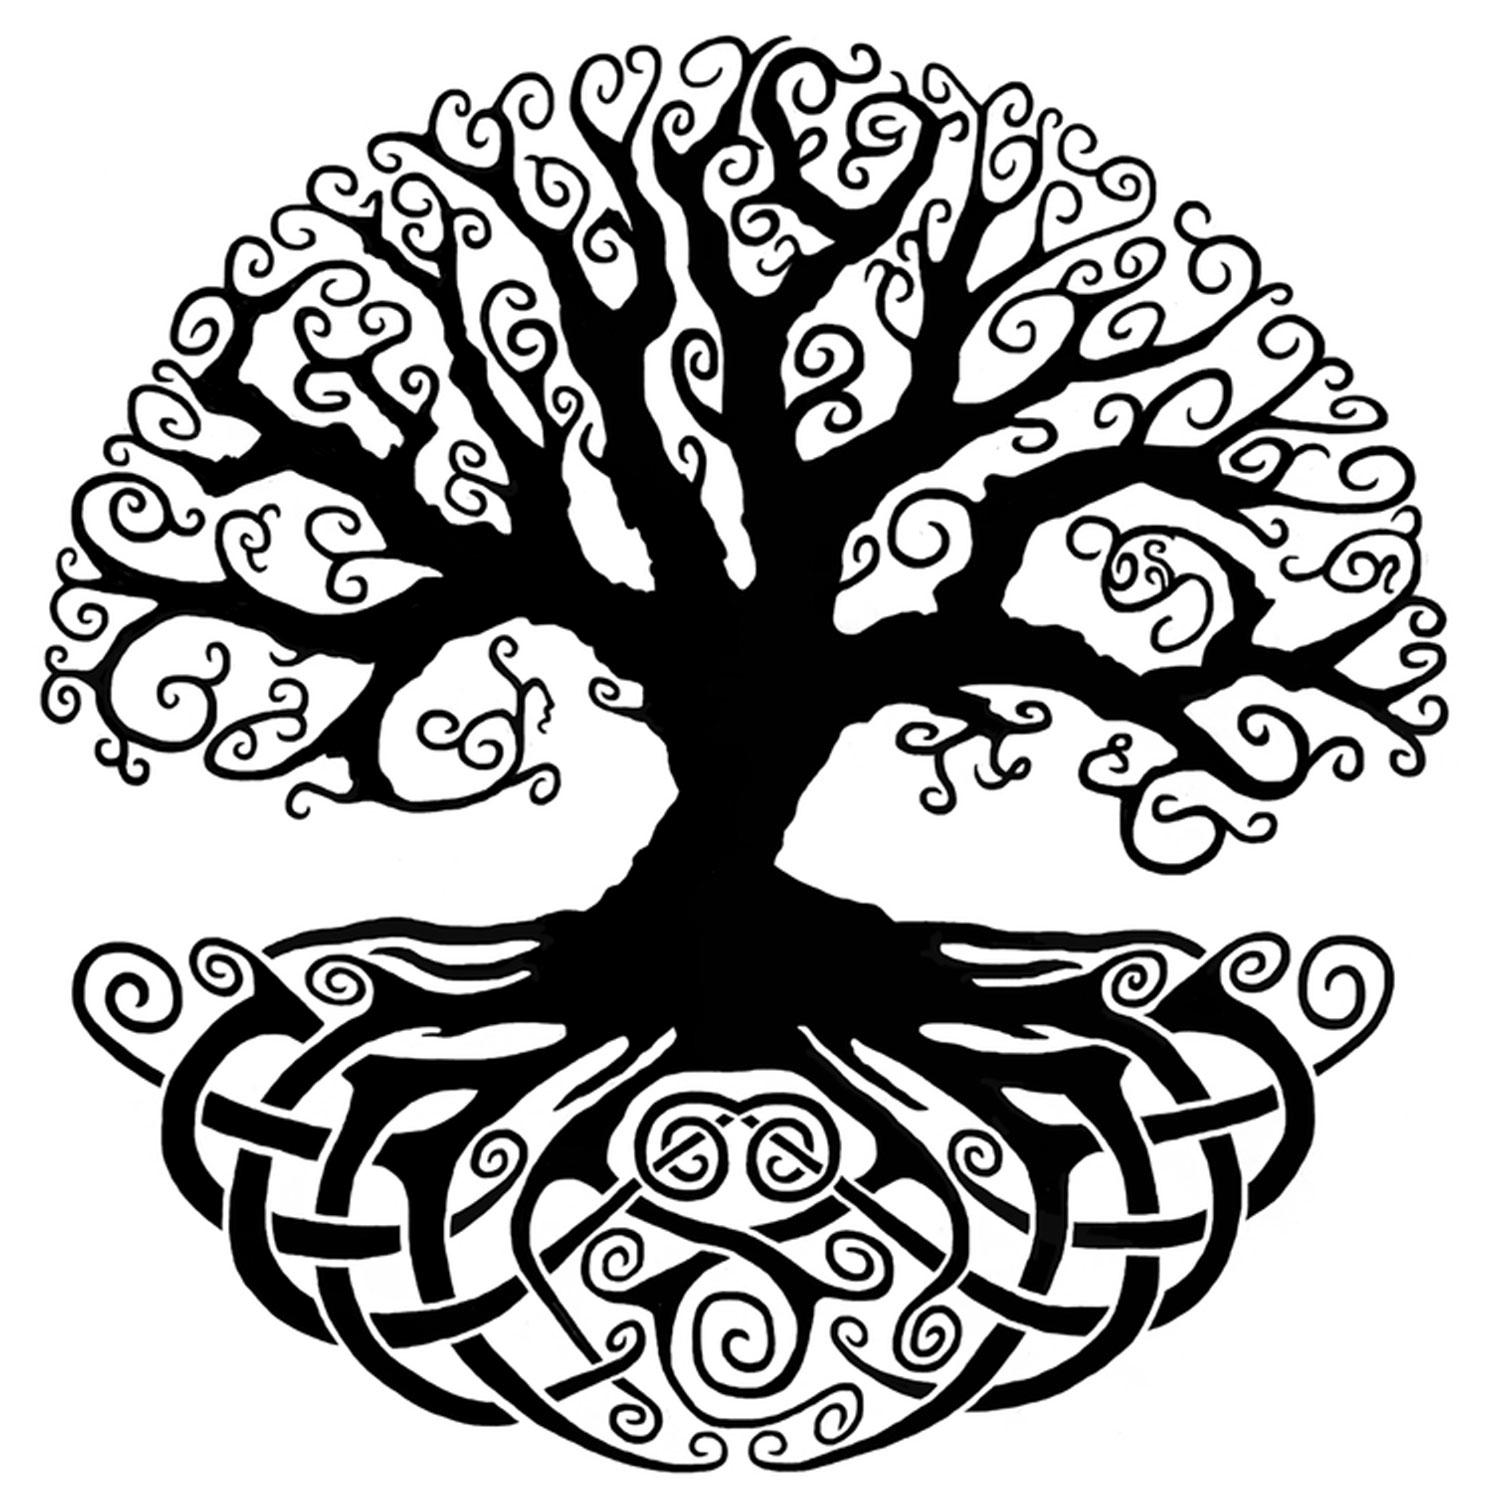 4 celtic knot tree of life black enamel decal